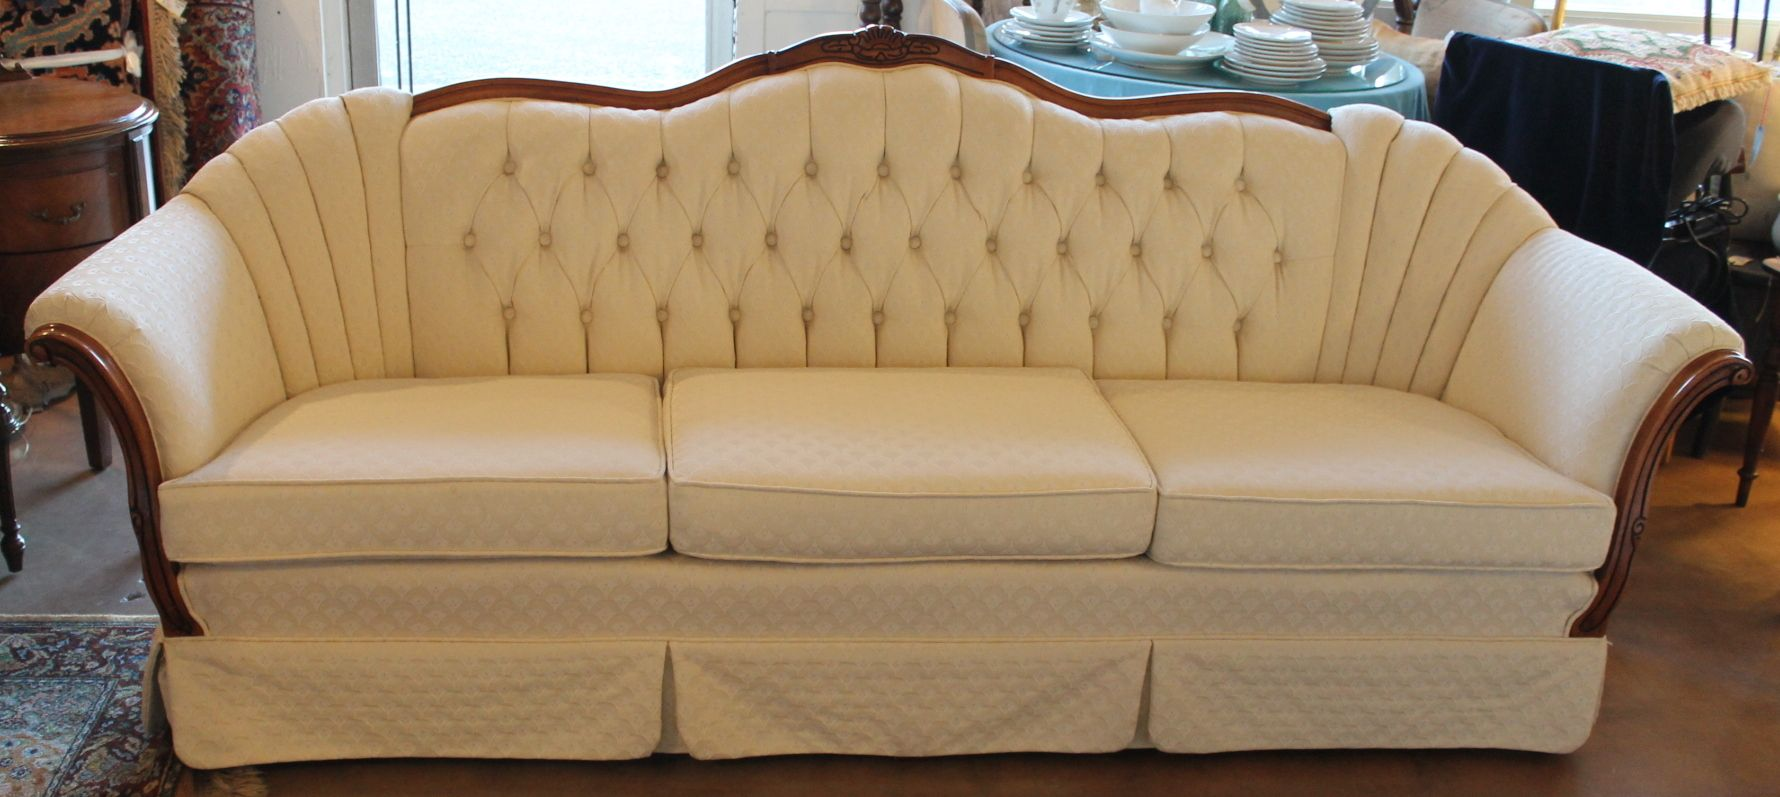 Formal French Provincial sofa by Kingsley Furniture ...